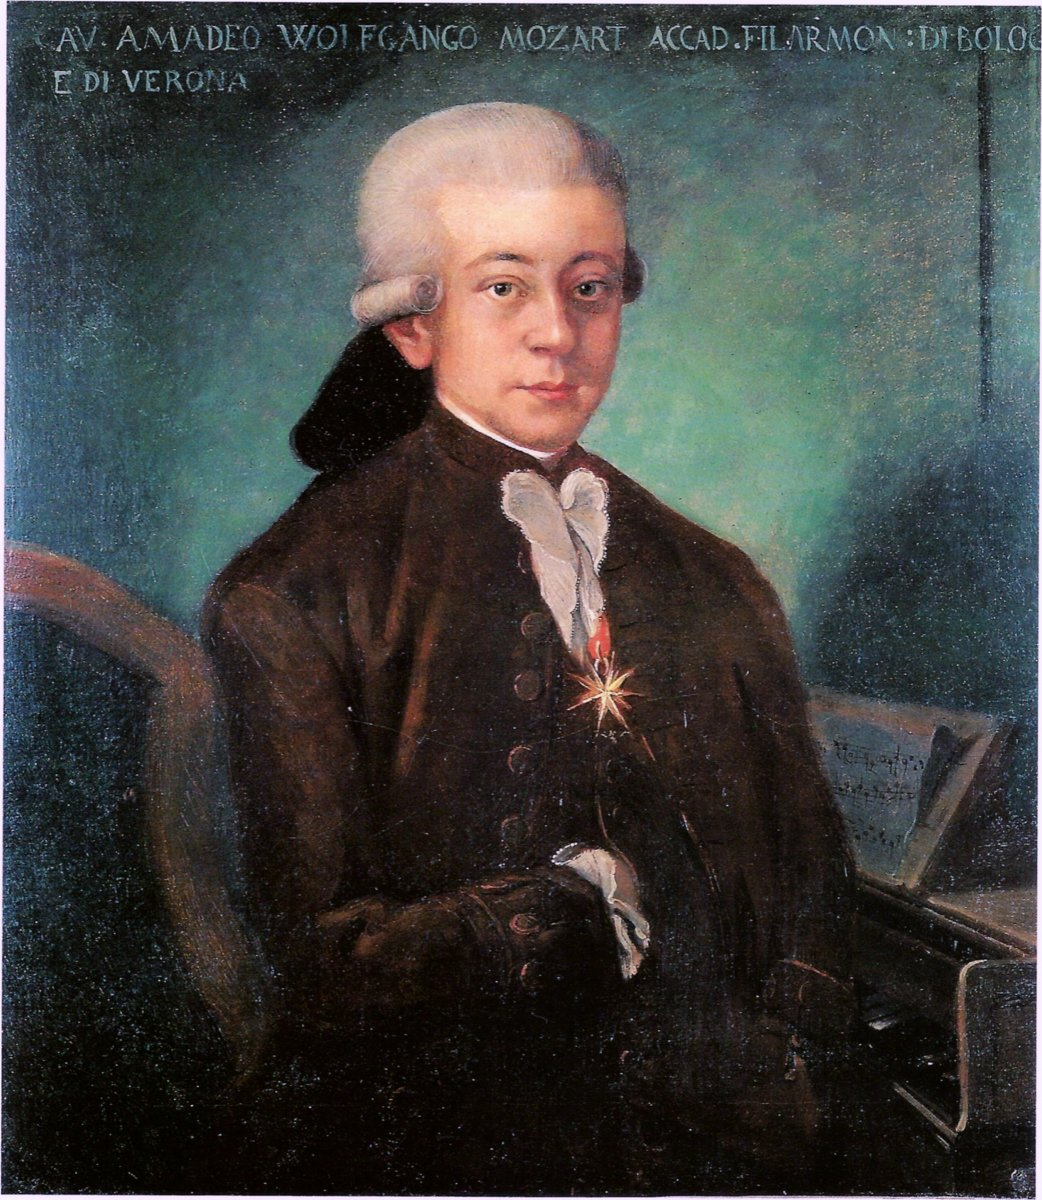 """An authentic painting of Mozart circa 1777.  Mozart's father said as to the resemblance of his son in this painting, """"...I can assure you that it is perfect""""."""